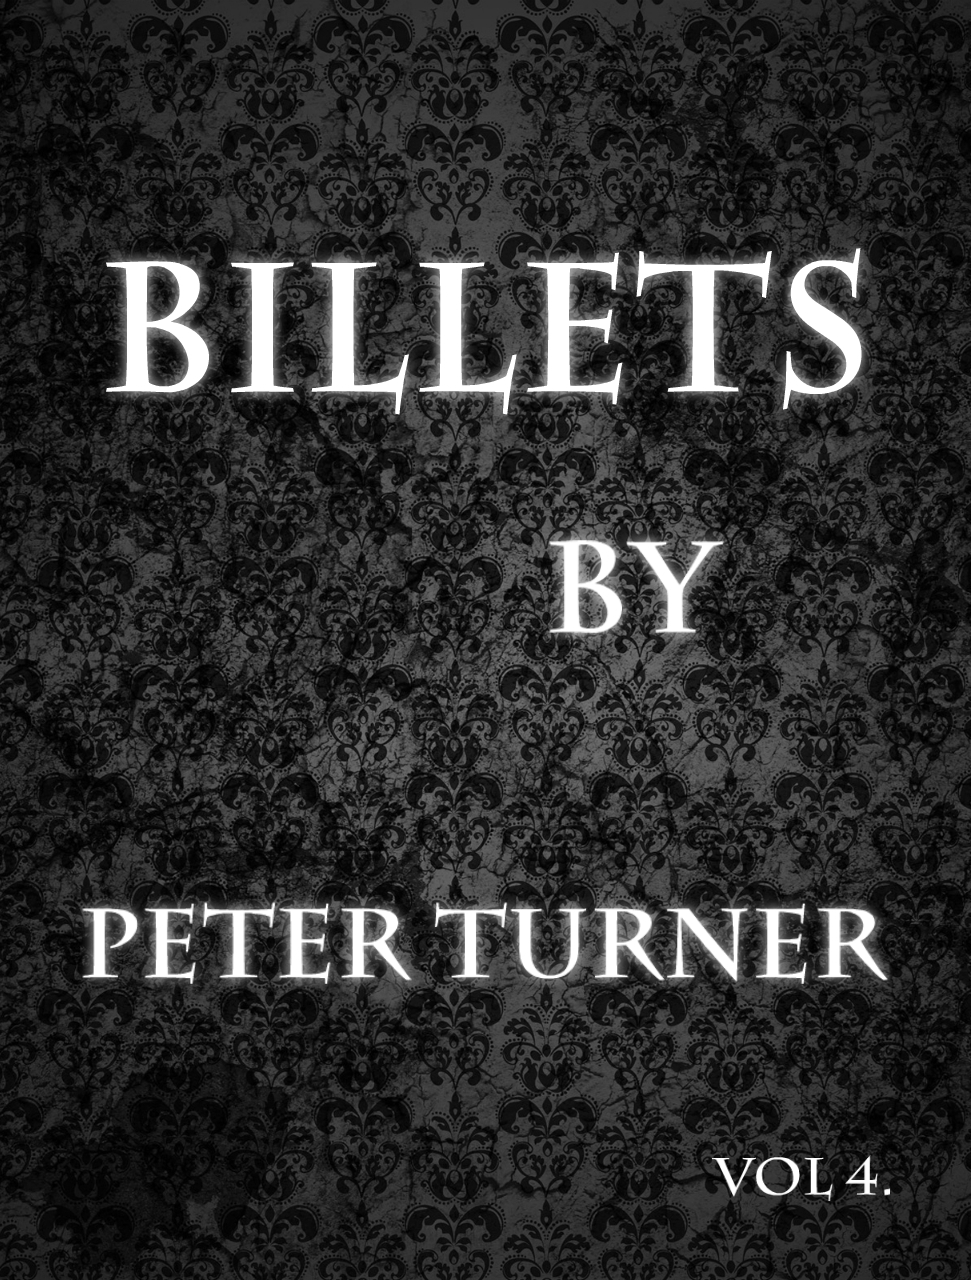 Billet Vol Vol 4 Billets By Peter Turner Instant Download